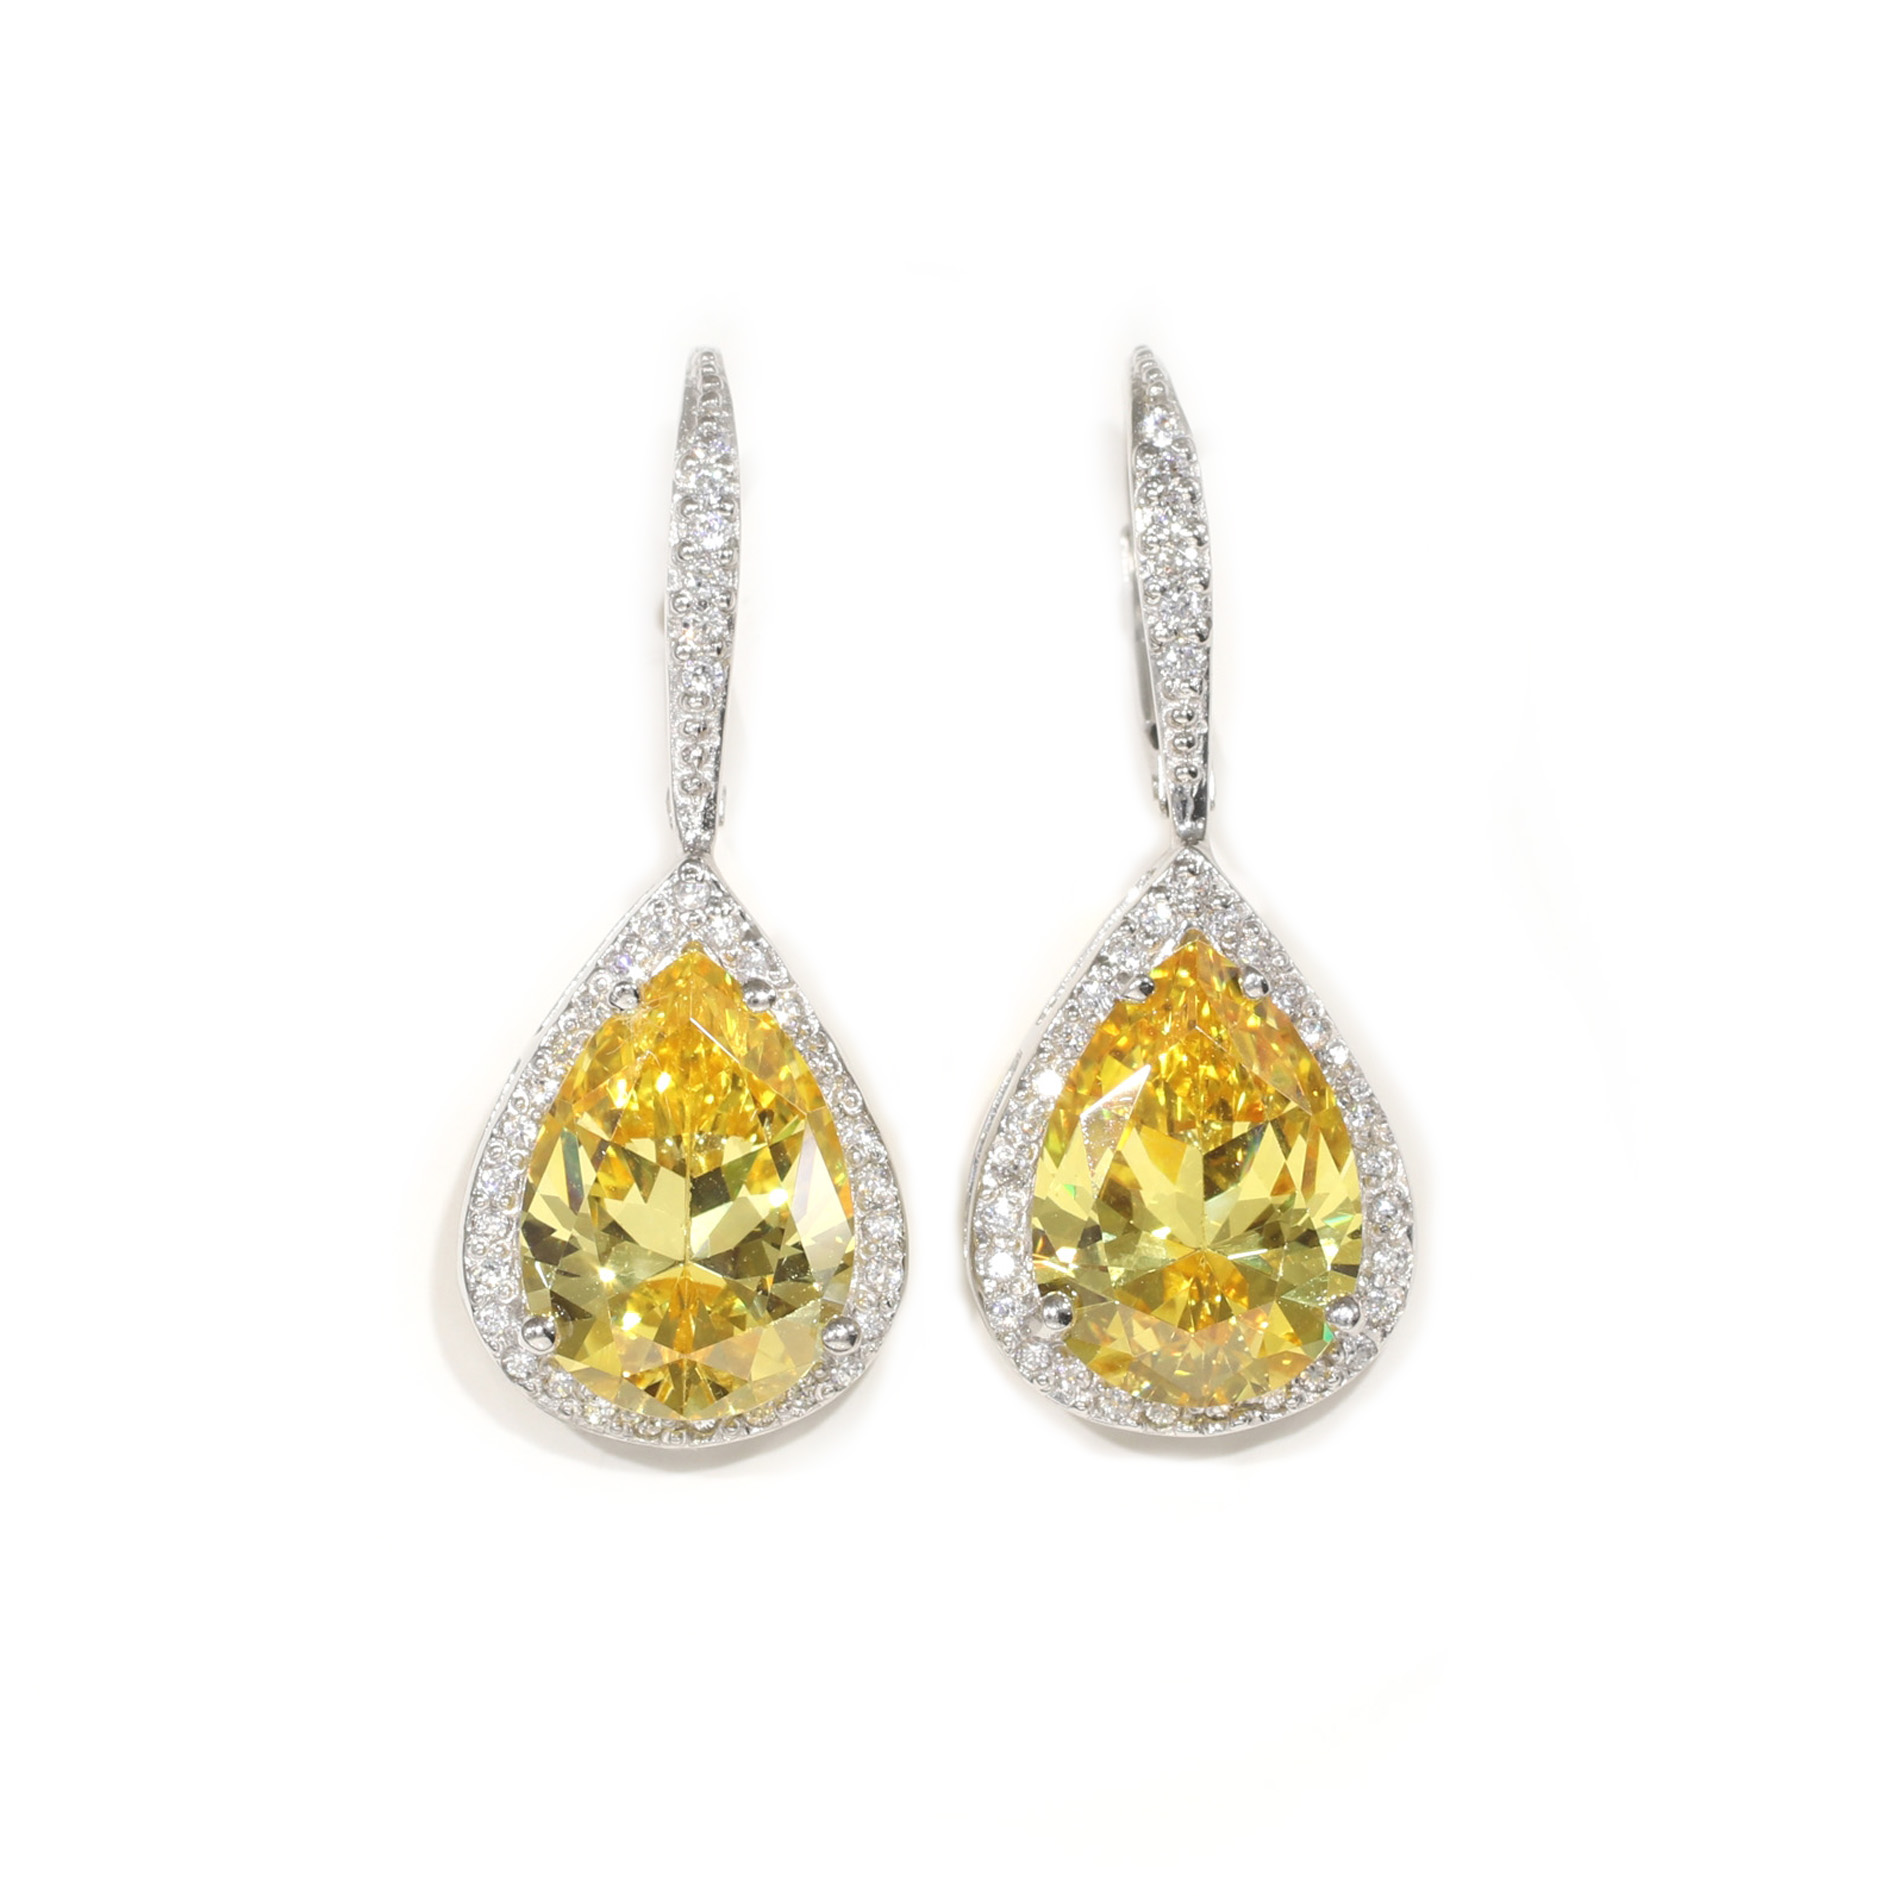 Large Canary Pear Leverback Earrings